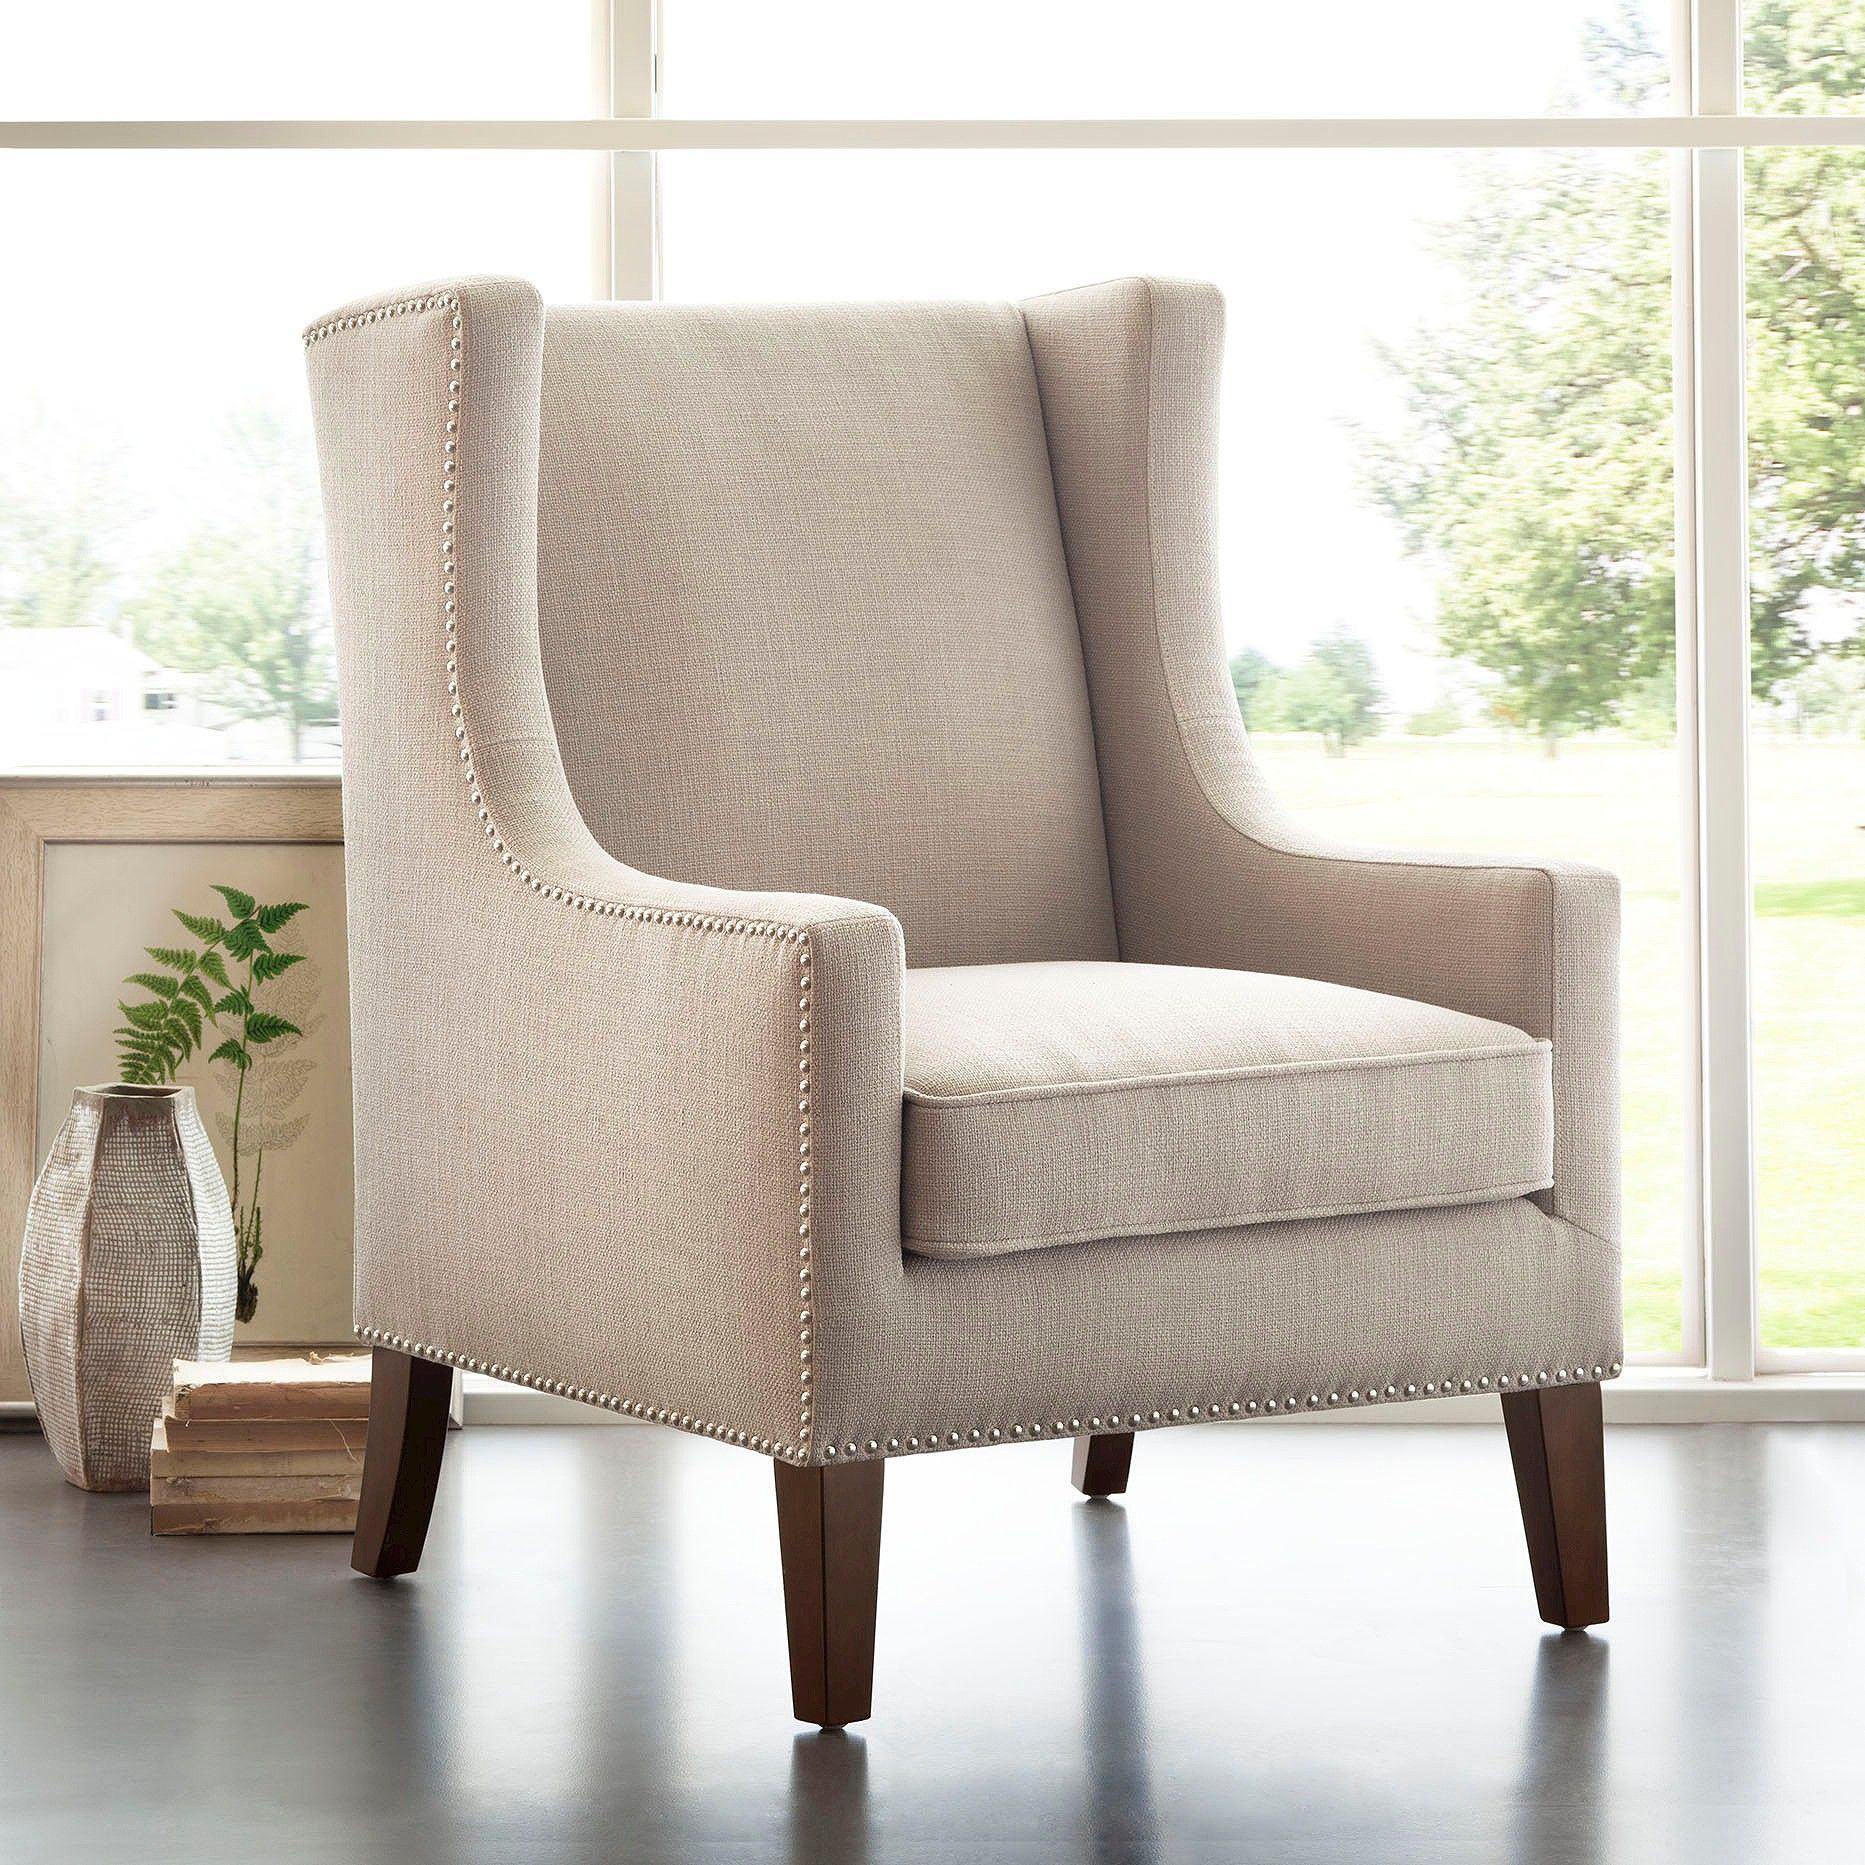 Colette Wing Chair Linen | Wingback Chair, Wing Chair, Linen Regarding Chagnon Wingback Chairs (View 15 of 15)